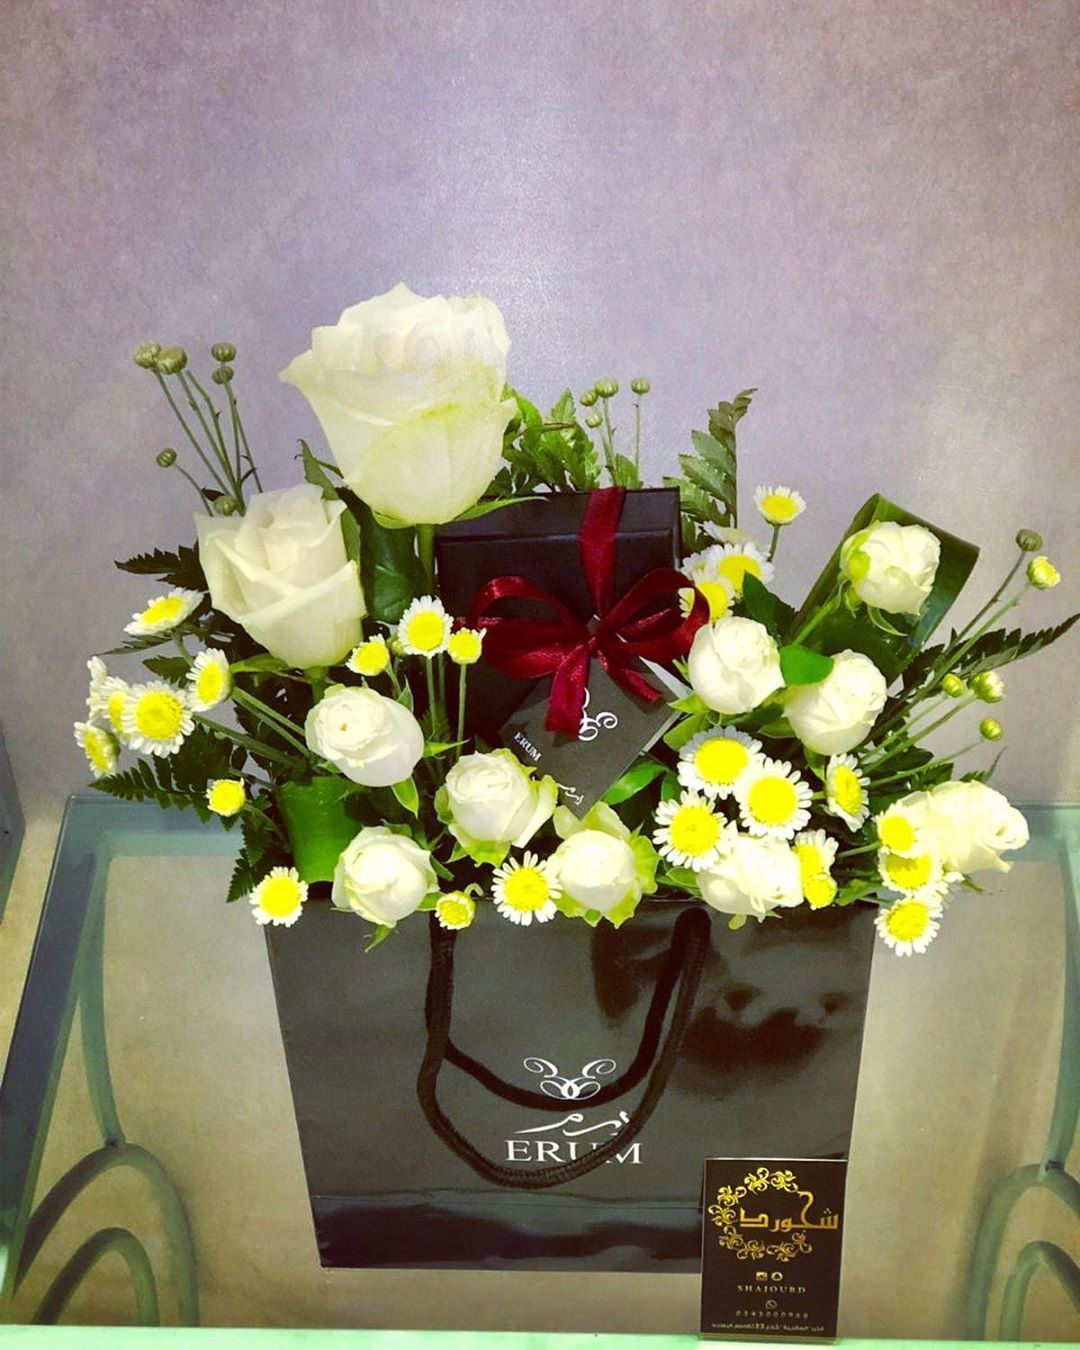 Flowers Delivery Riyadh Saudi Arabia - Easy Kitchen Design